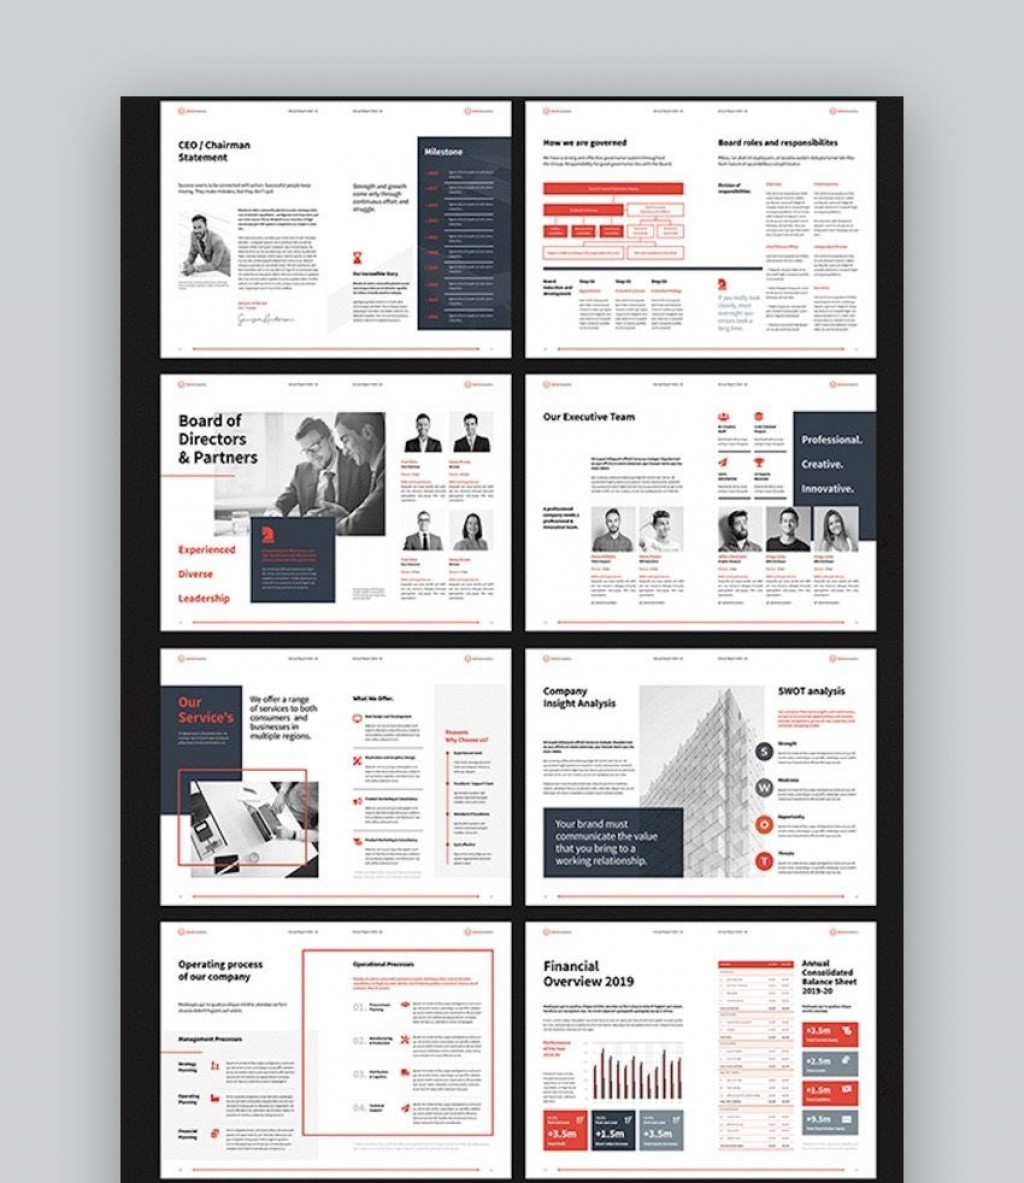 004 Fearsome Microsoft Word Design Template High Resolution  Templates Brochure Free MLarge